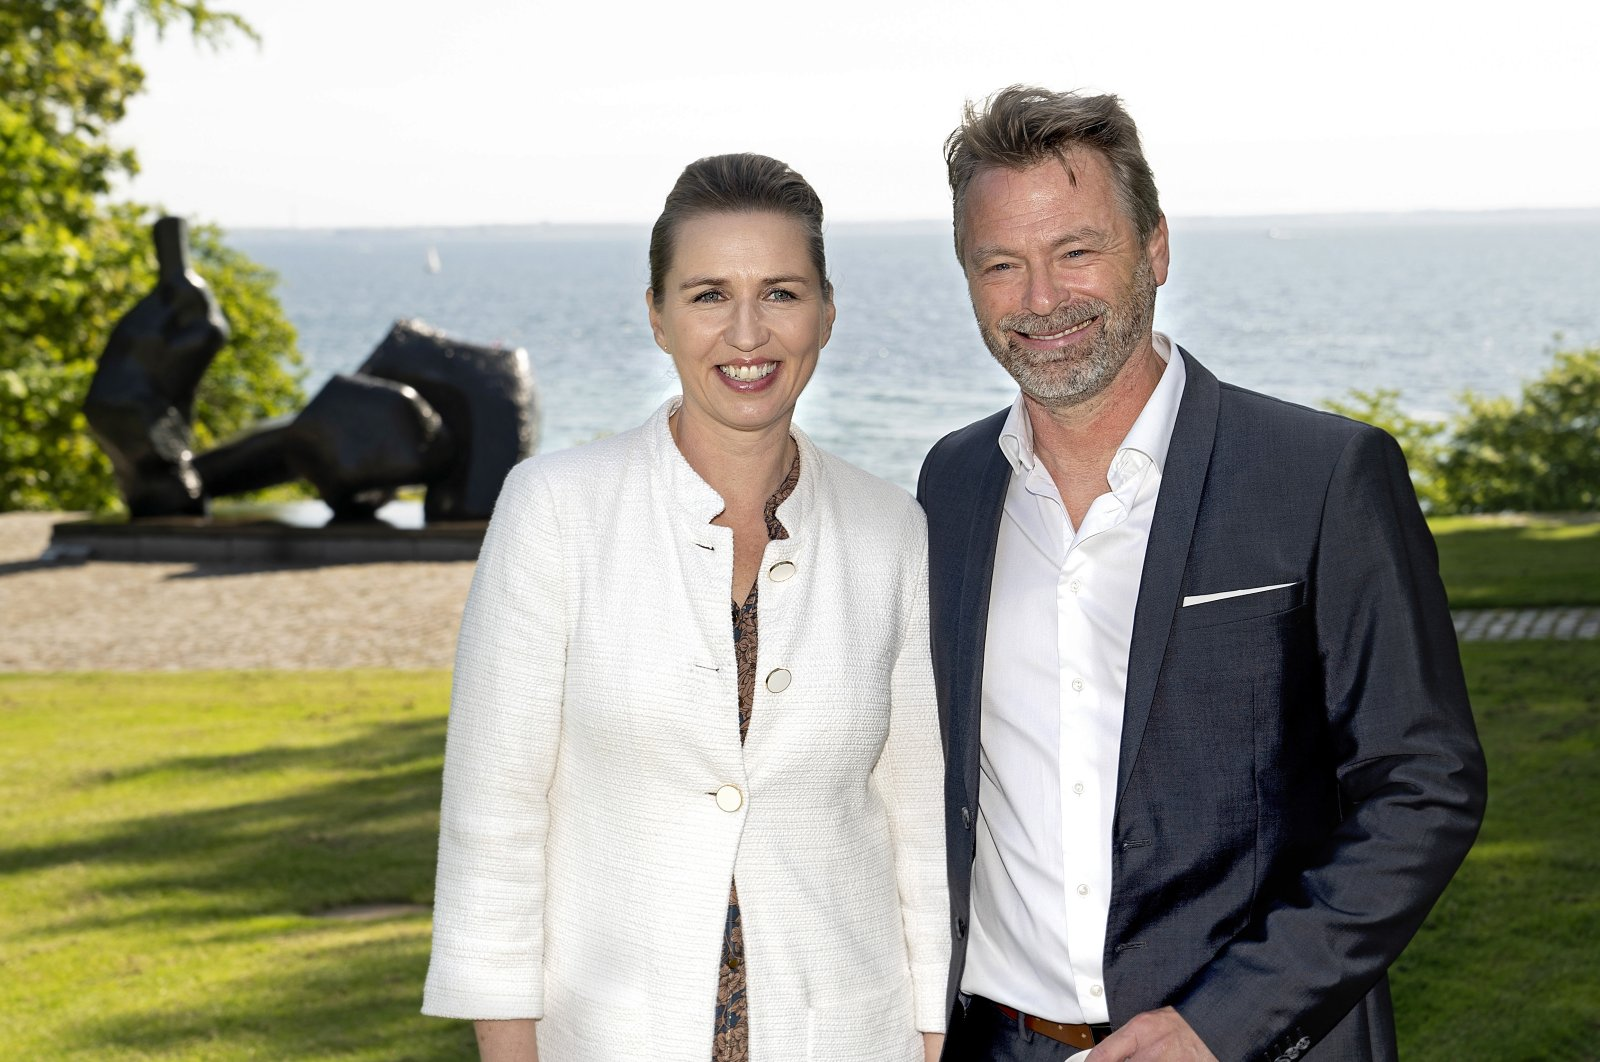 Danish Prime Minister Mette Frederiksen (L) and her fiance, Bo Tengberg, pose for a photograph during their visit to the Louisiana Museum of Modern Art in Humlebaek, Denmark, May 22, 2020. (EPA Photo)